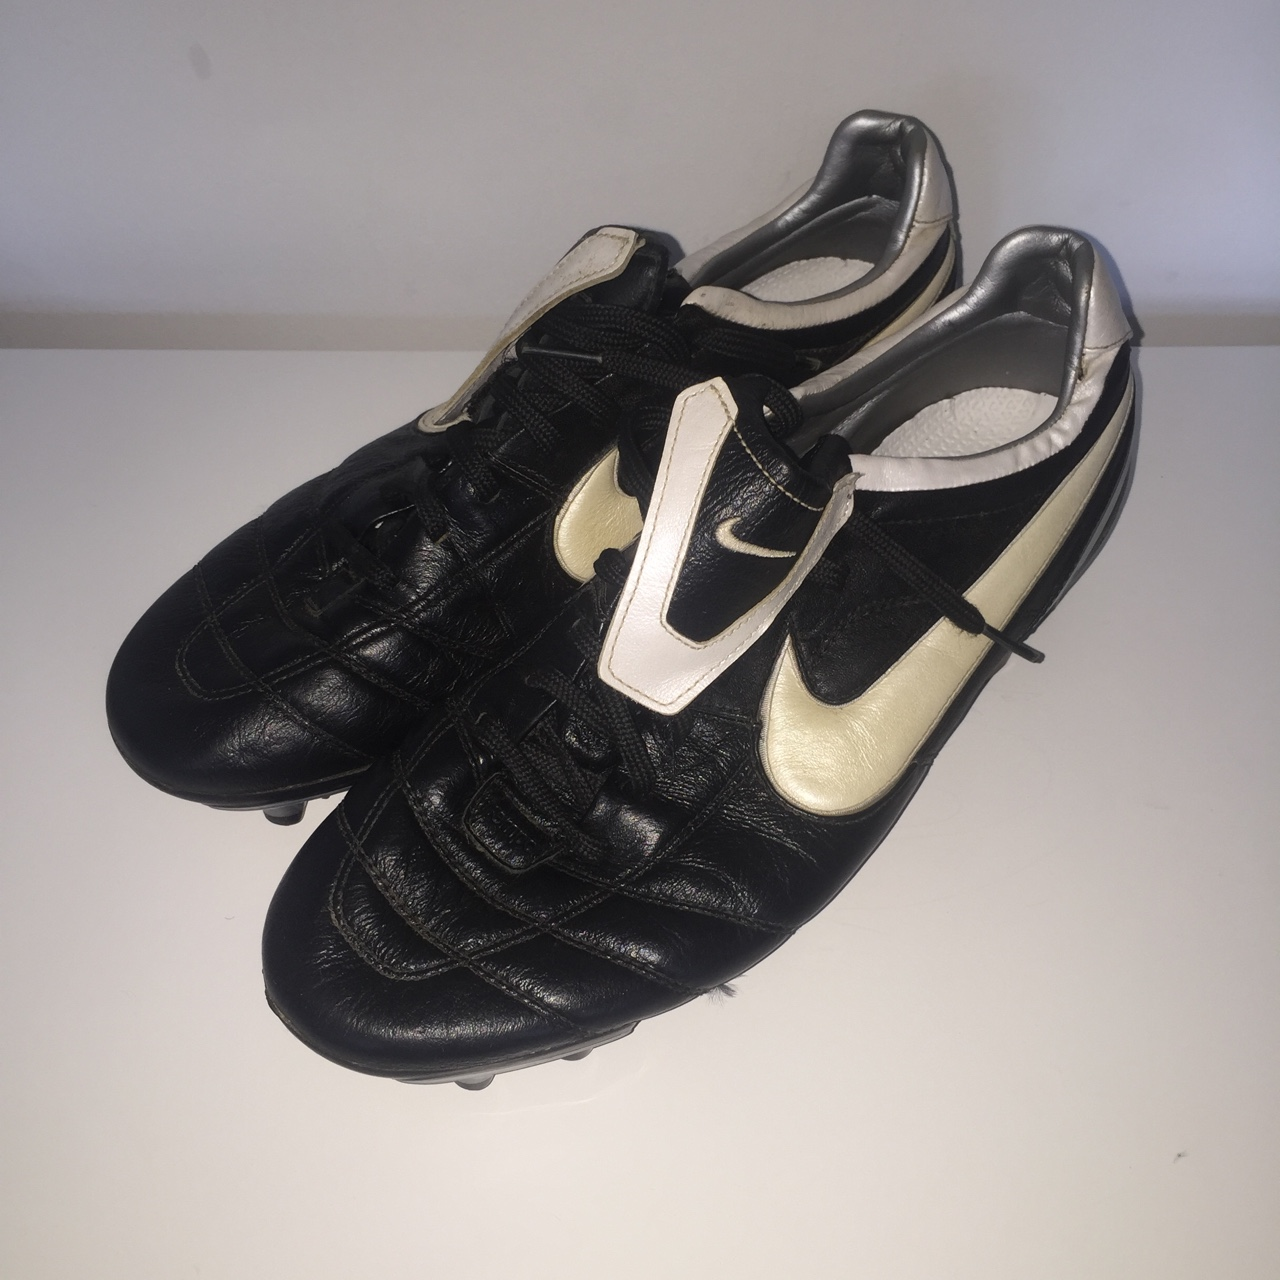 info for 2a532 5b10e Old school classic Nike Tiempo in great condition uk9 - Depop